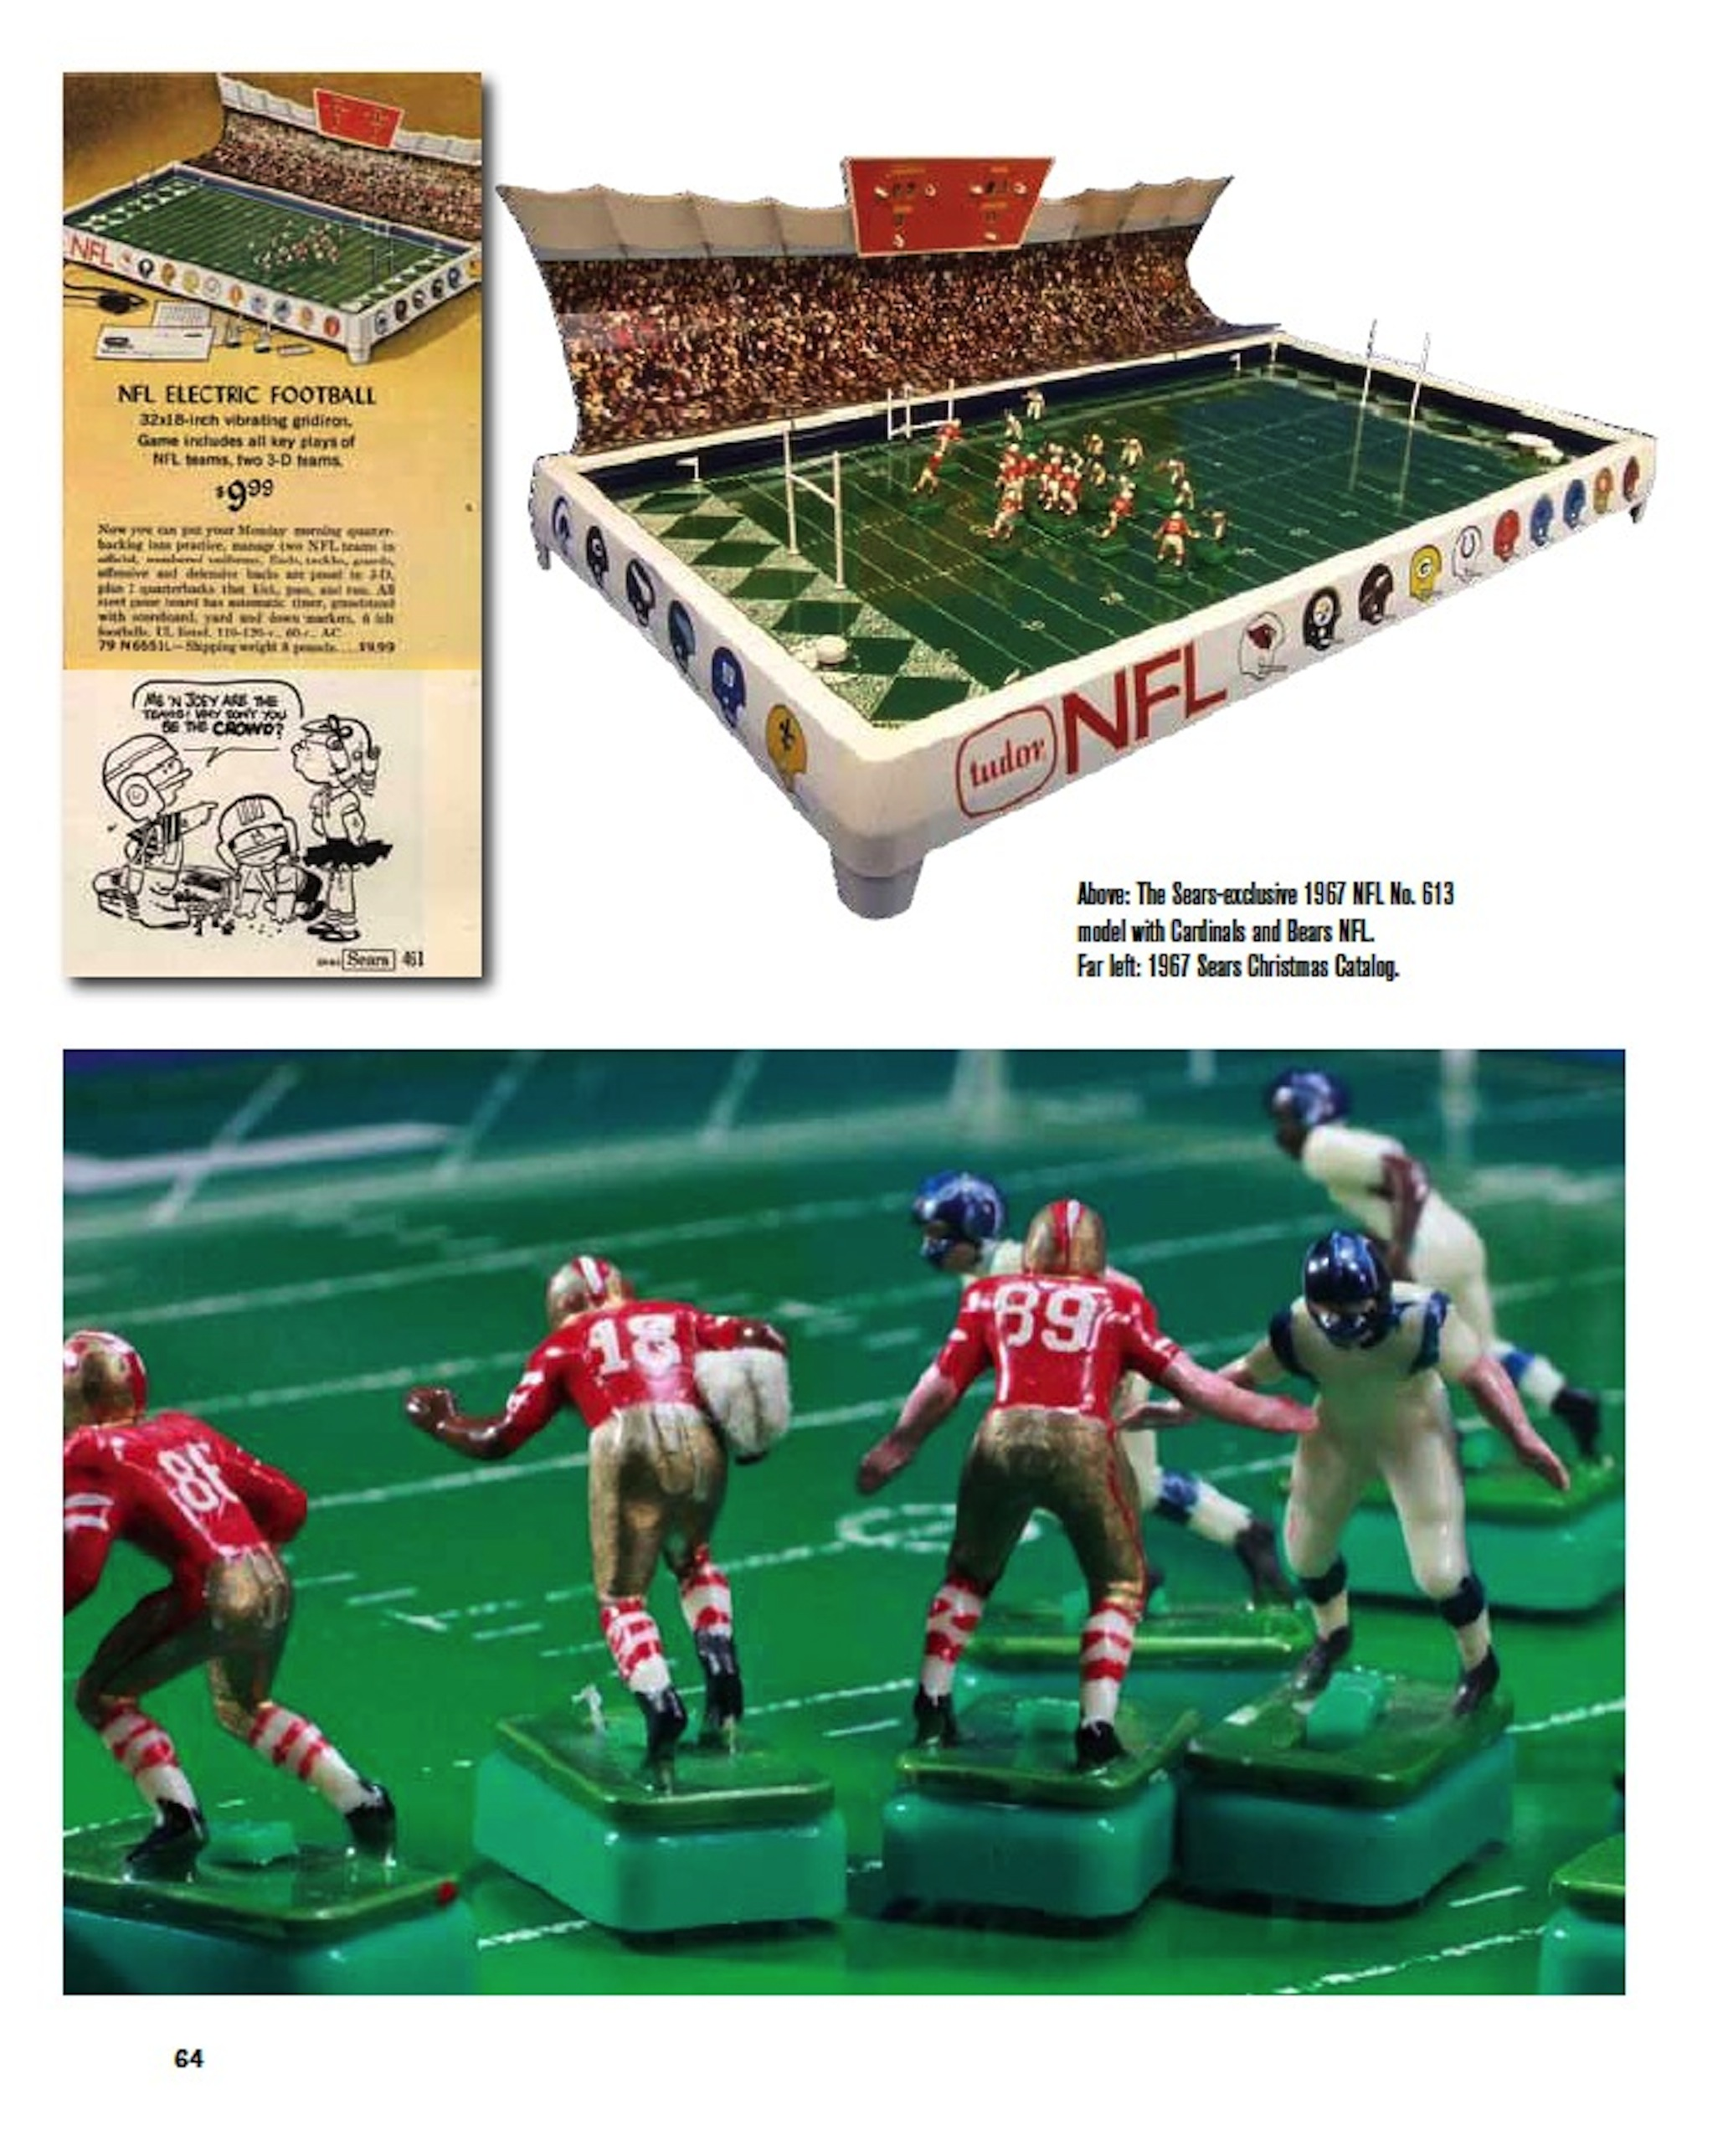 full color electric football book page 64 nfl sears no 613 game bears cardinals - Nfl Christmas Games